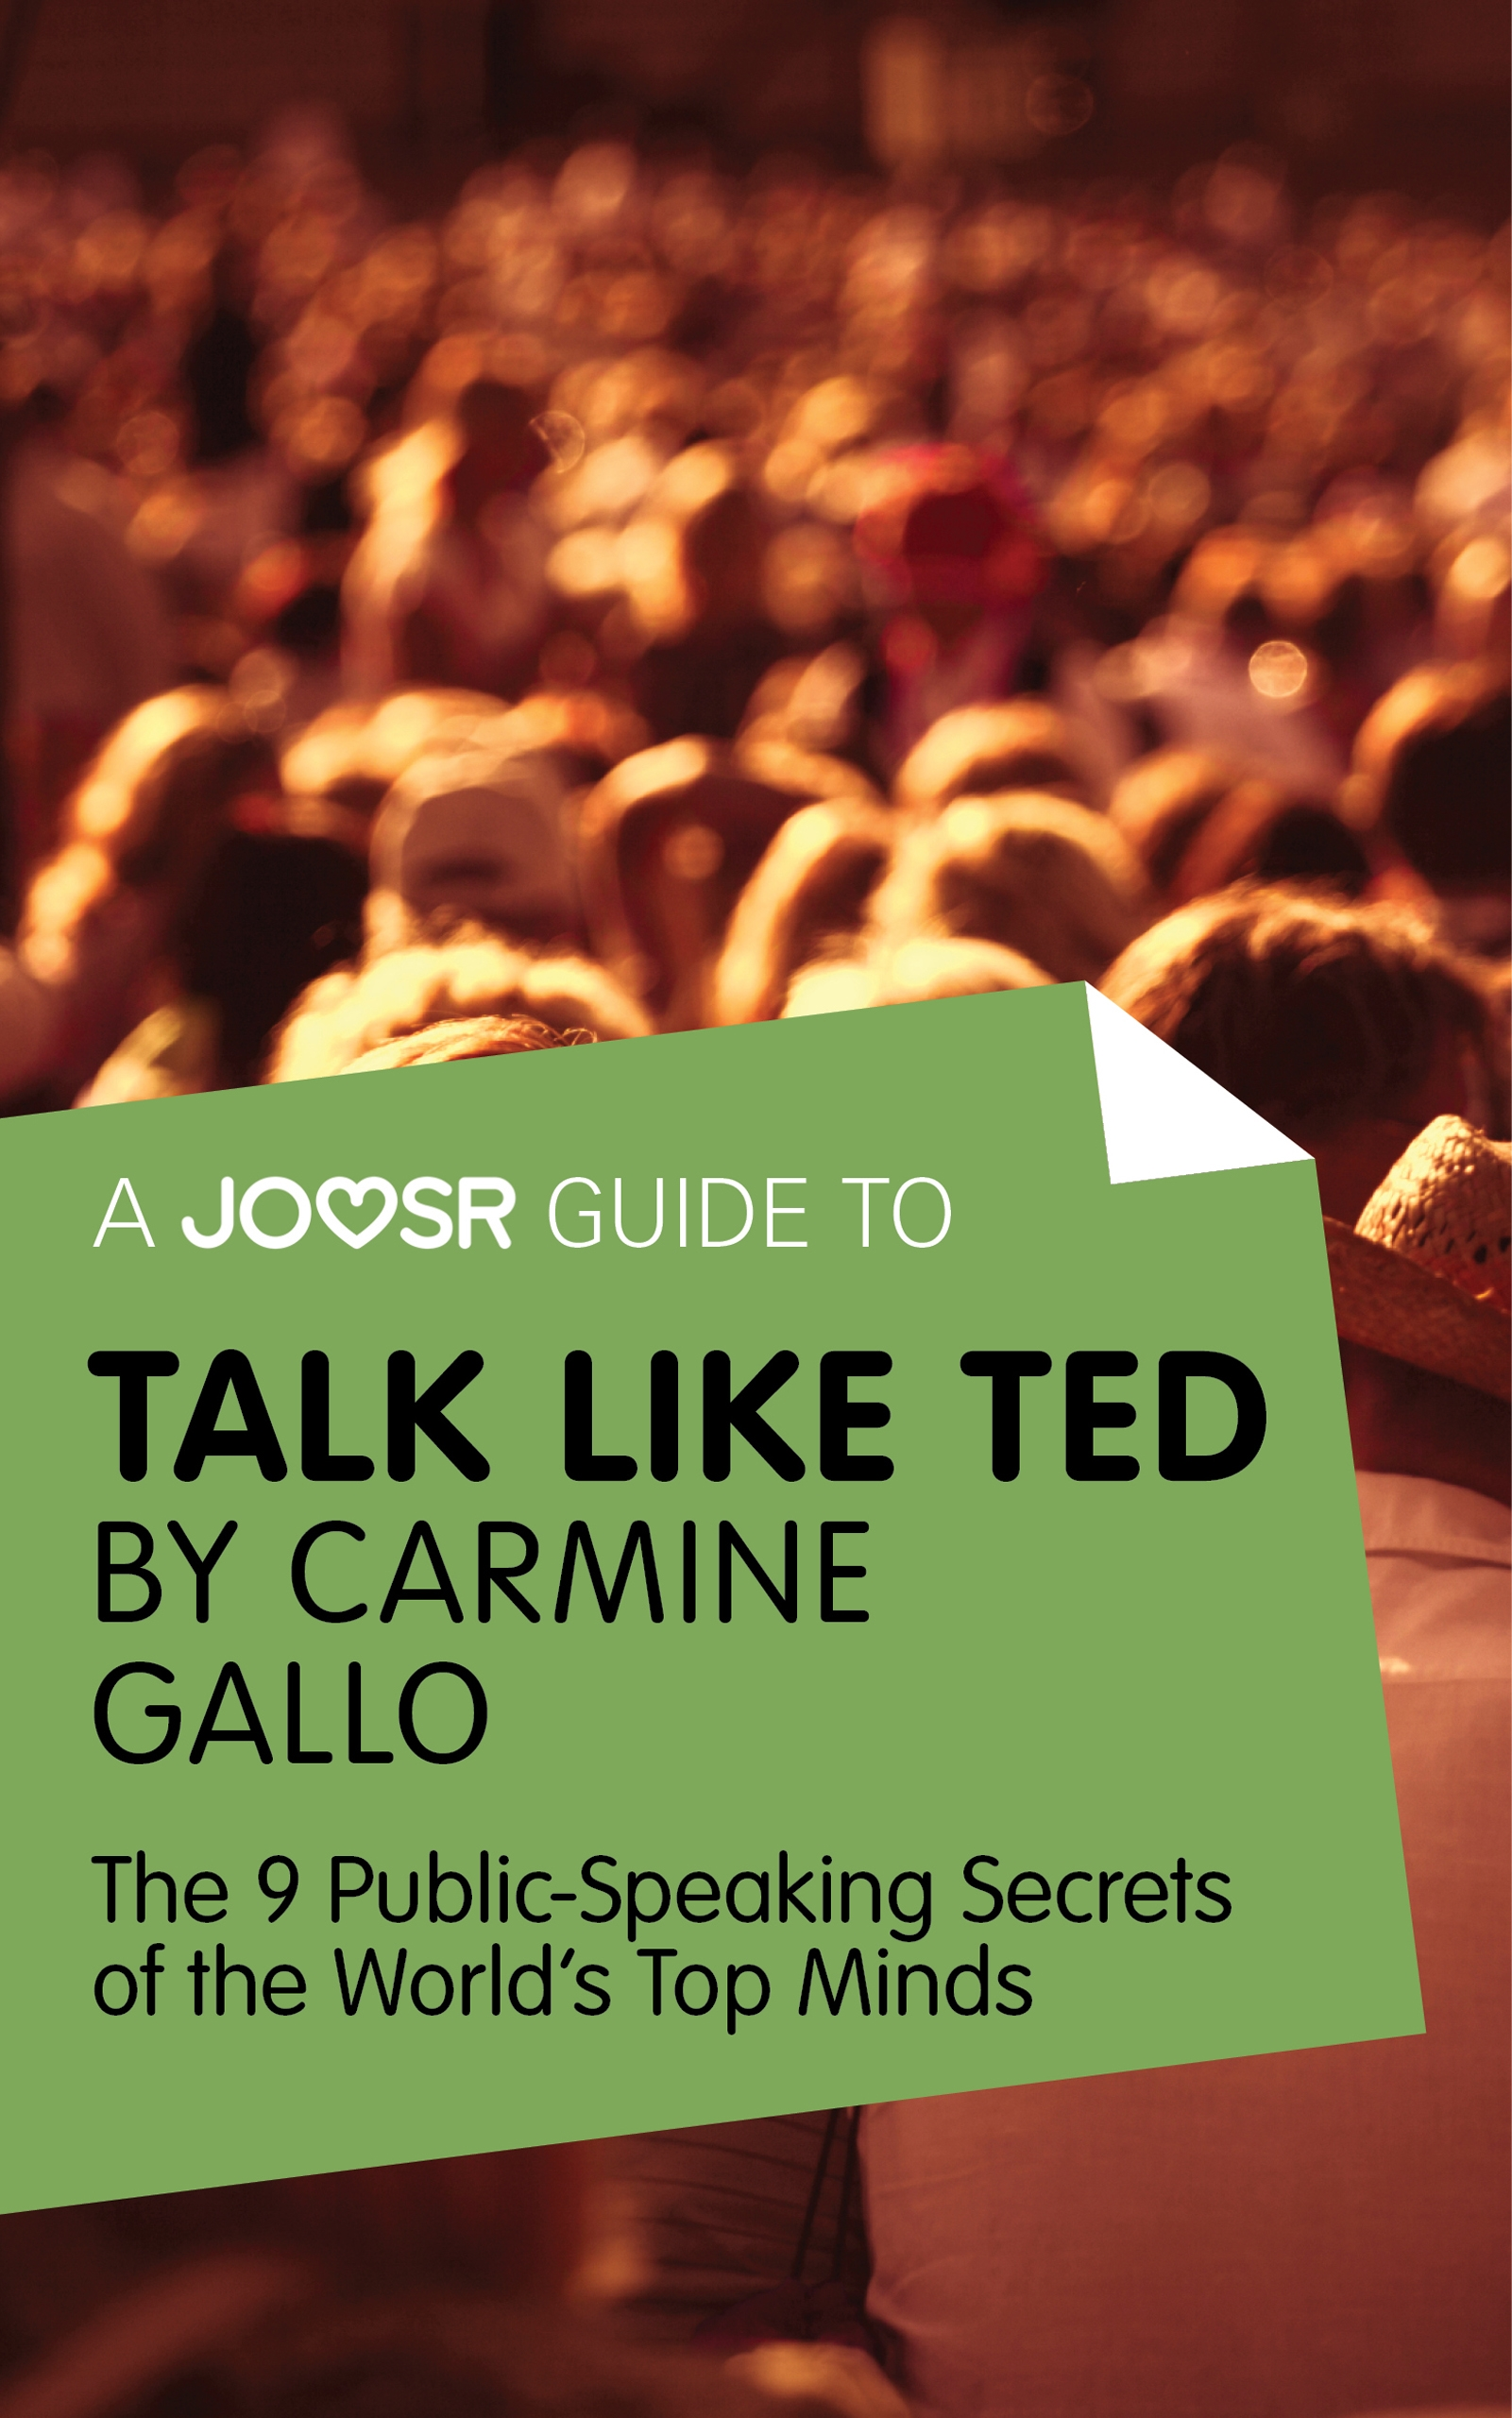 Download Ebook A Joosr Guide to... Talk Like TED by Carmine Gallo by Joosr Pdf